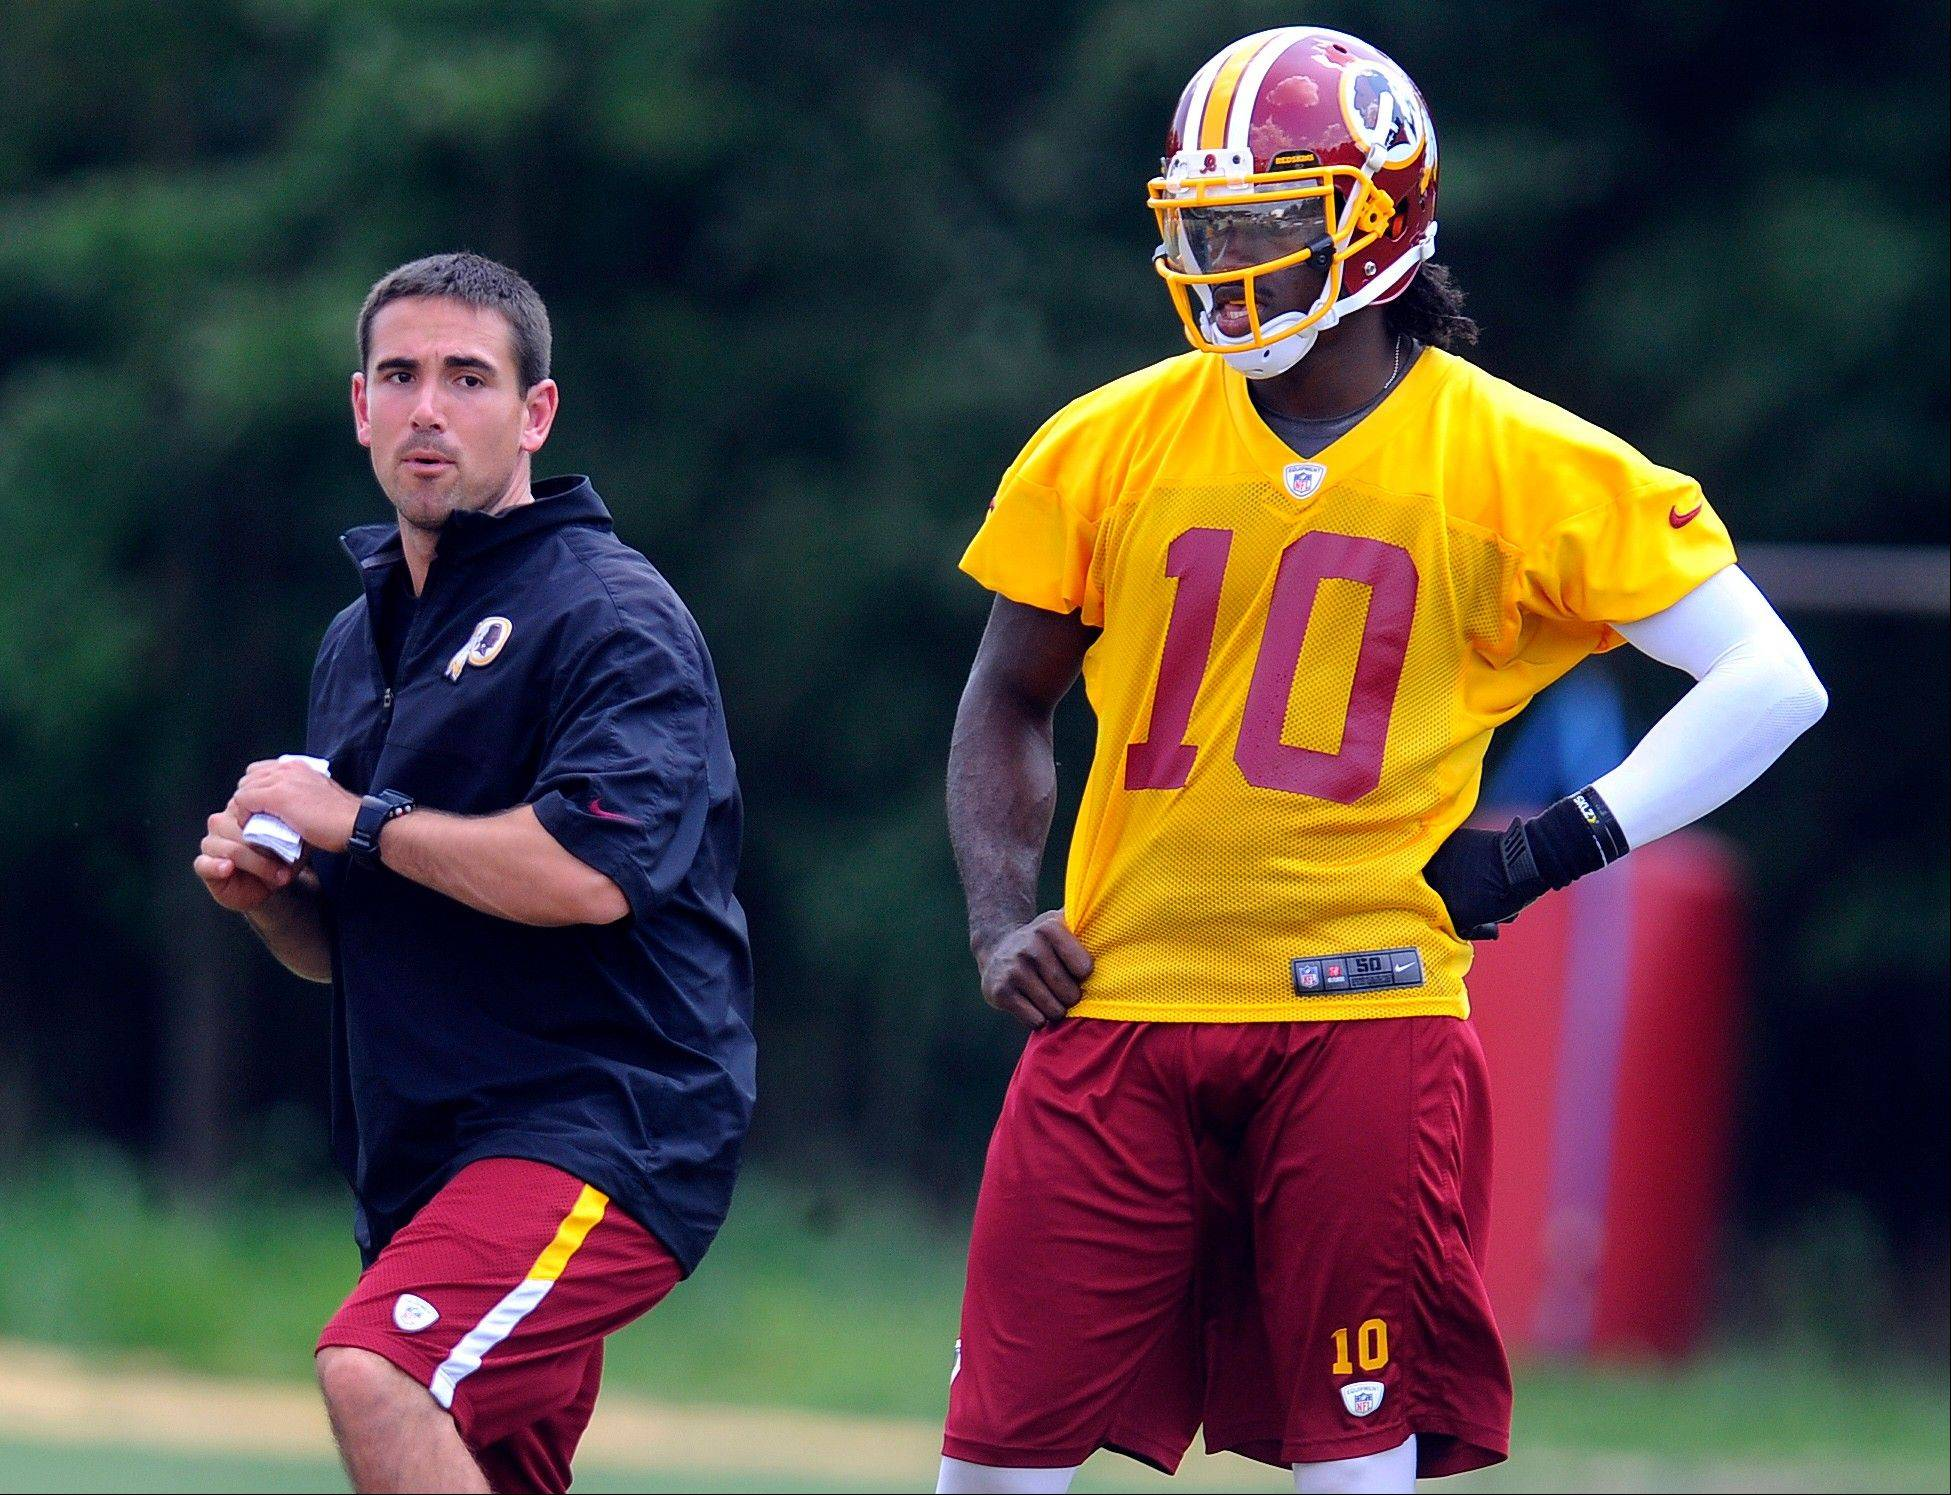 FILE - In this Aug. 16, 2012, file photo, Washington Redskins quarterback coach Matt LaFleur, left, works with quarterback Robert Griffin III during NFL football training camp in Ashburn, Va. Notre Dame head football coach Brian Kelly announced Friday, Jan. 24, 2014, that they hired LaFleur as the team's new quarterbacks coach.